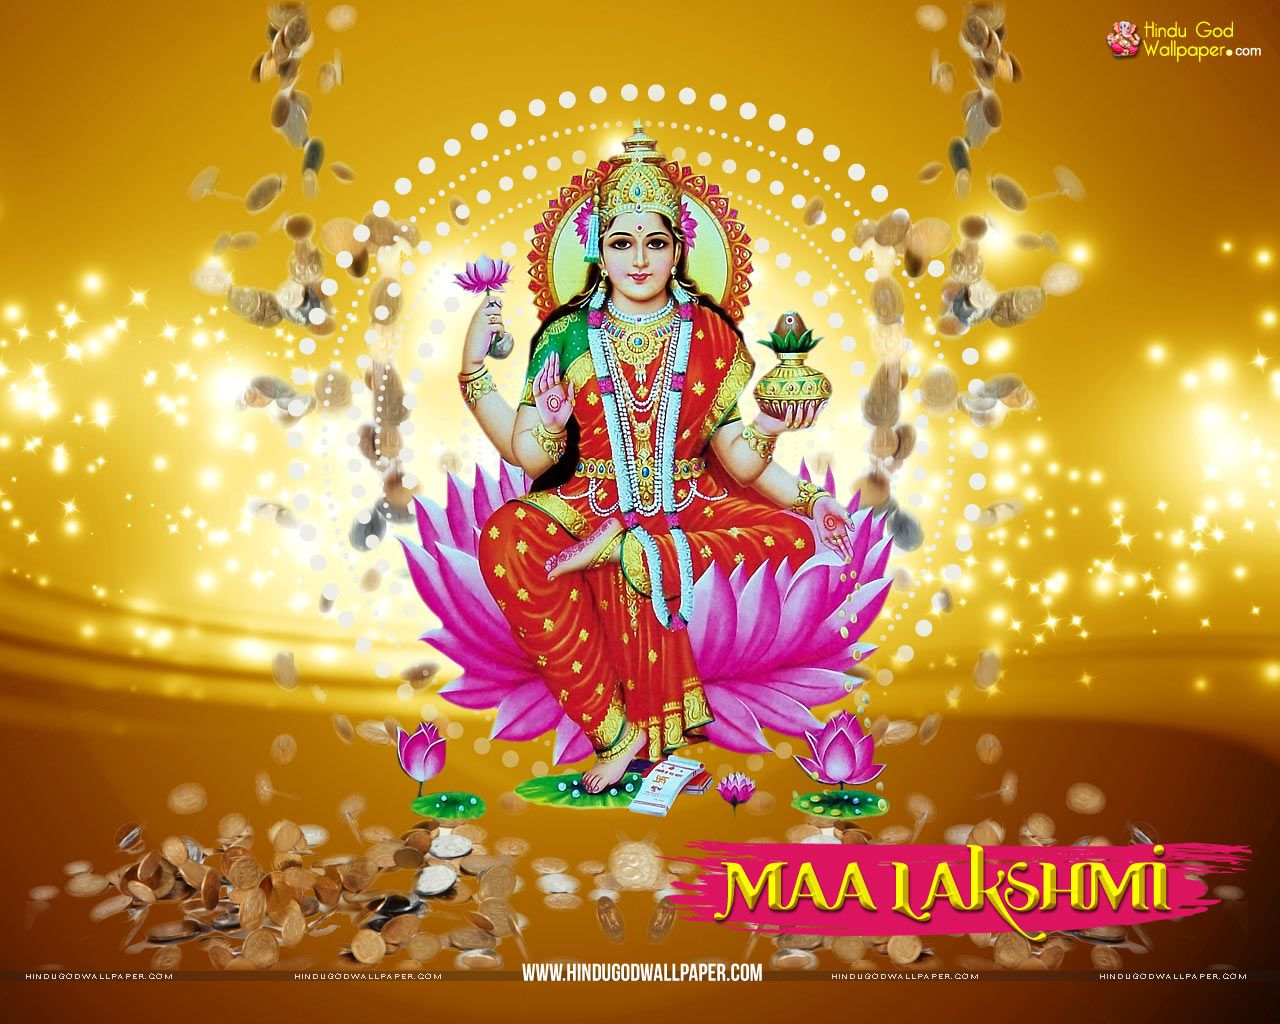 Maa Lakshmi Desktop Background Jpg 1280 1024 Panda Wallpapers Wallpaper Downloads Android Wallpaper